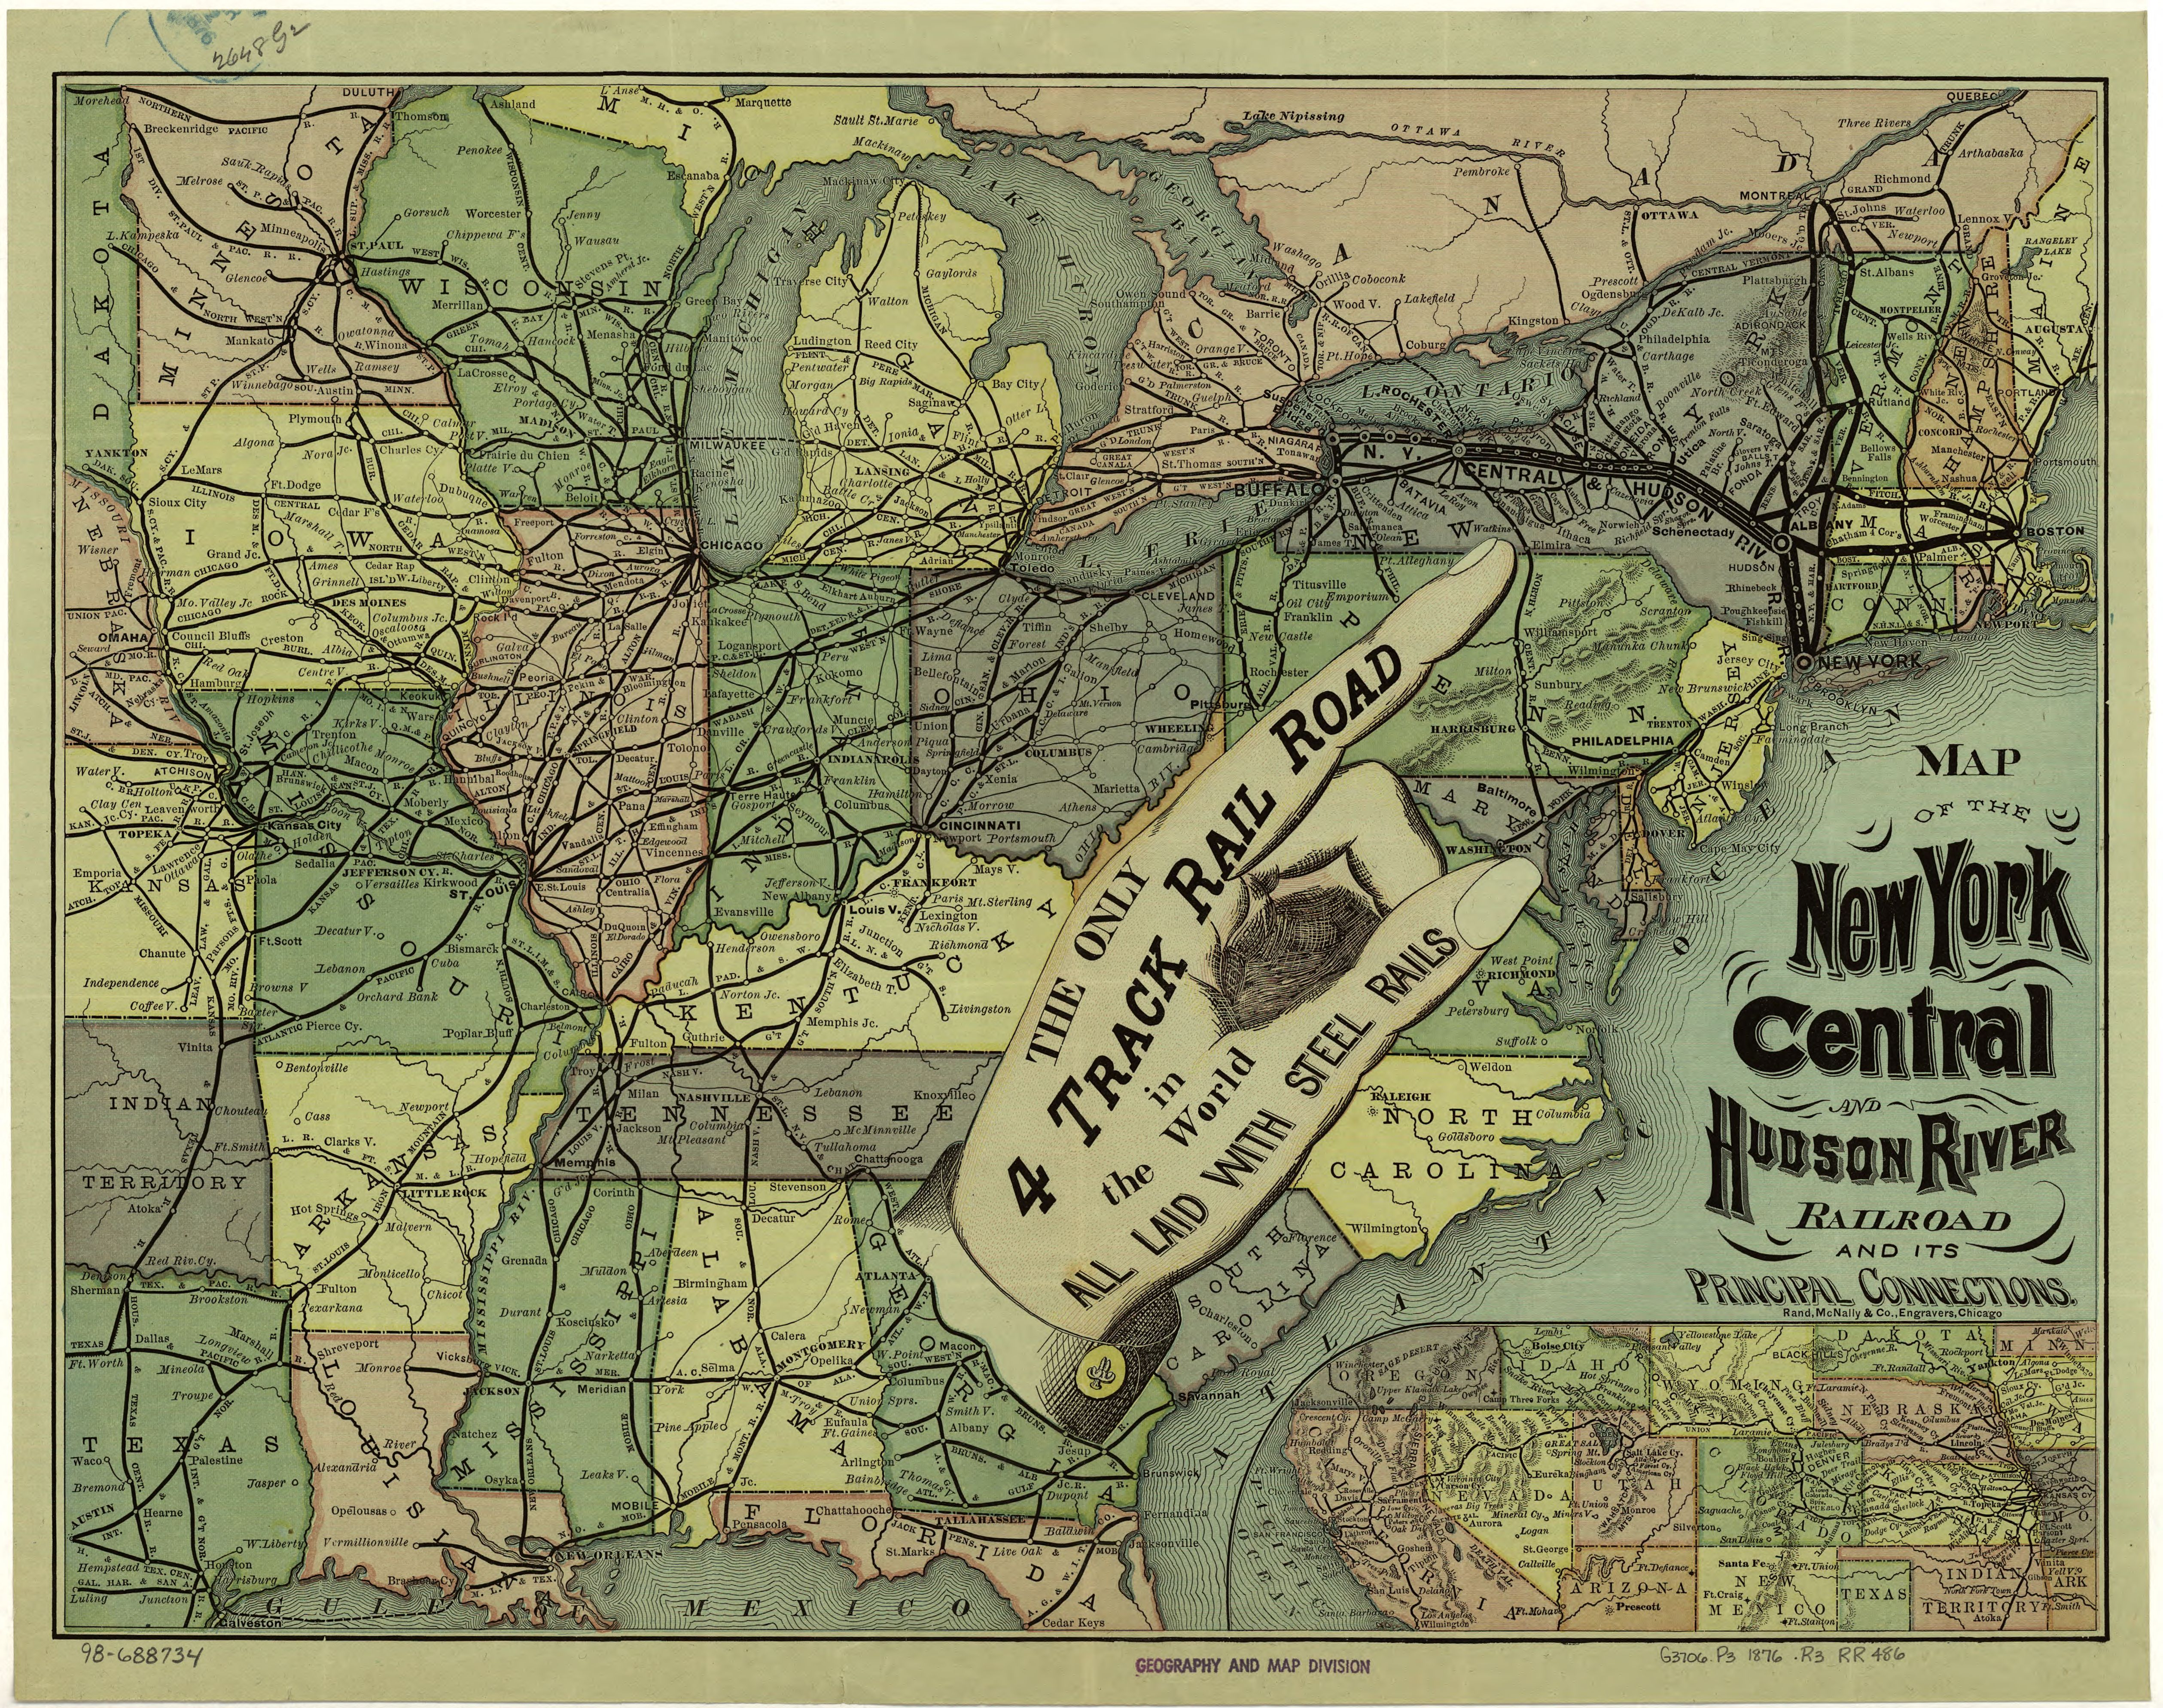 North America Map In 1750%0A Map of the New York Central and Hudson River Railroad  map  railroad   newyork